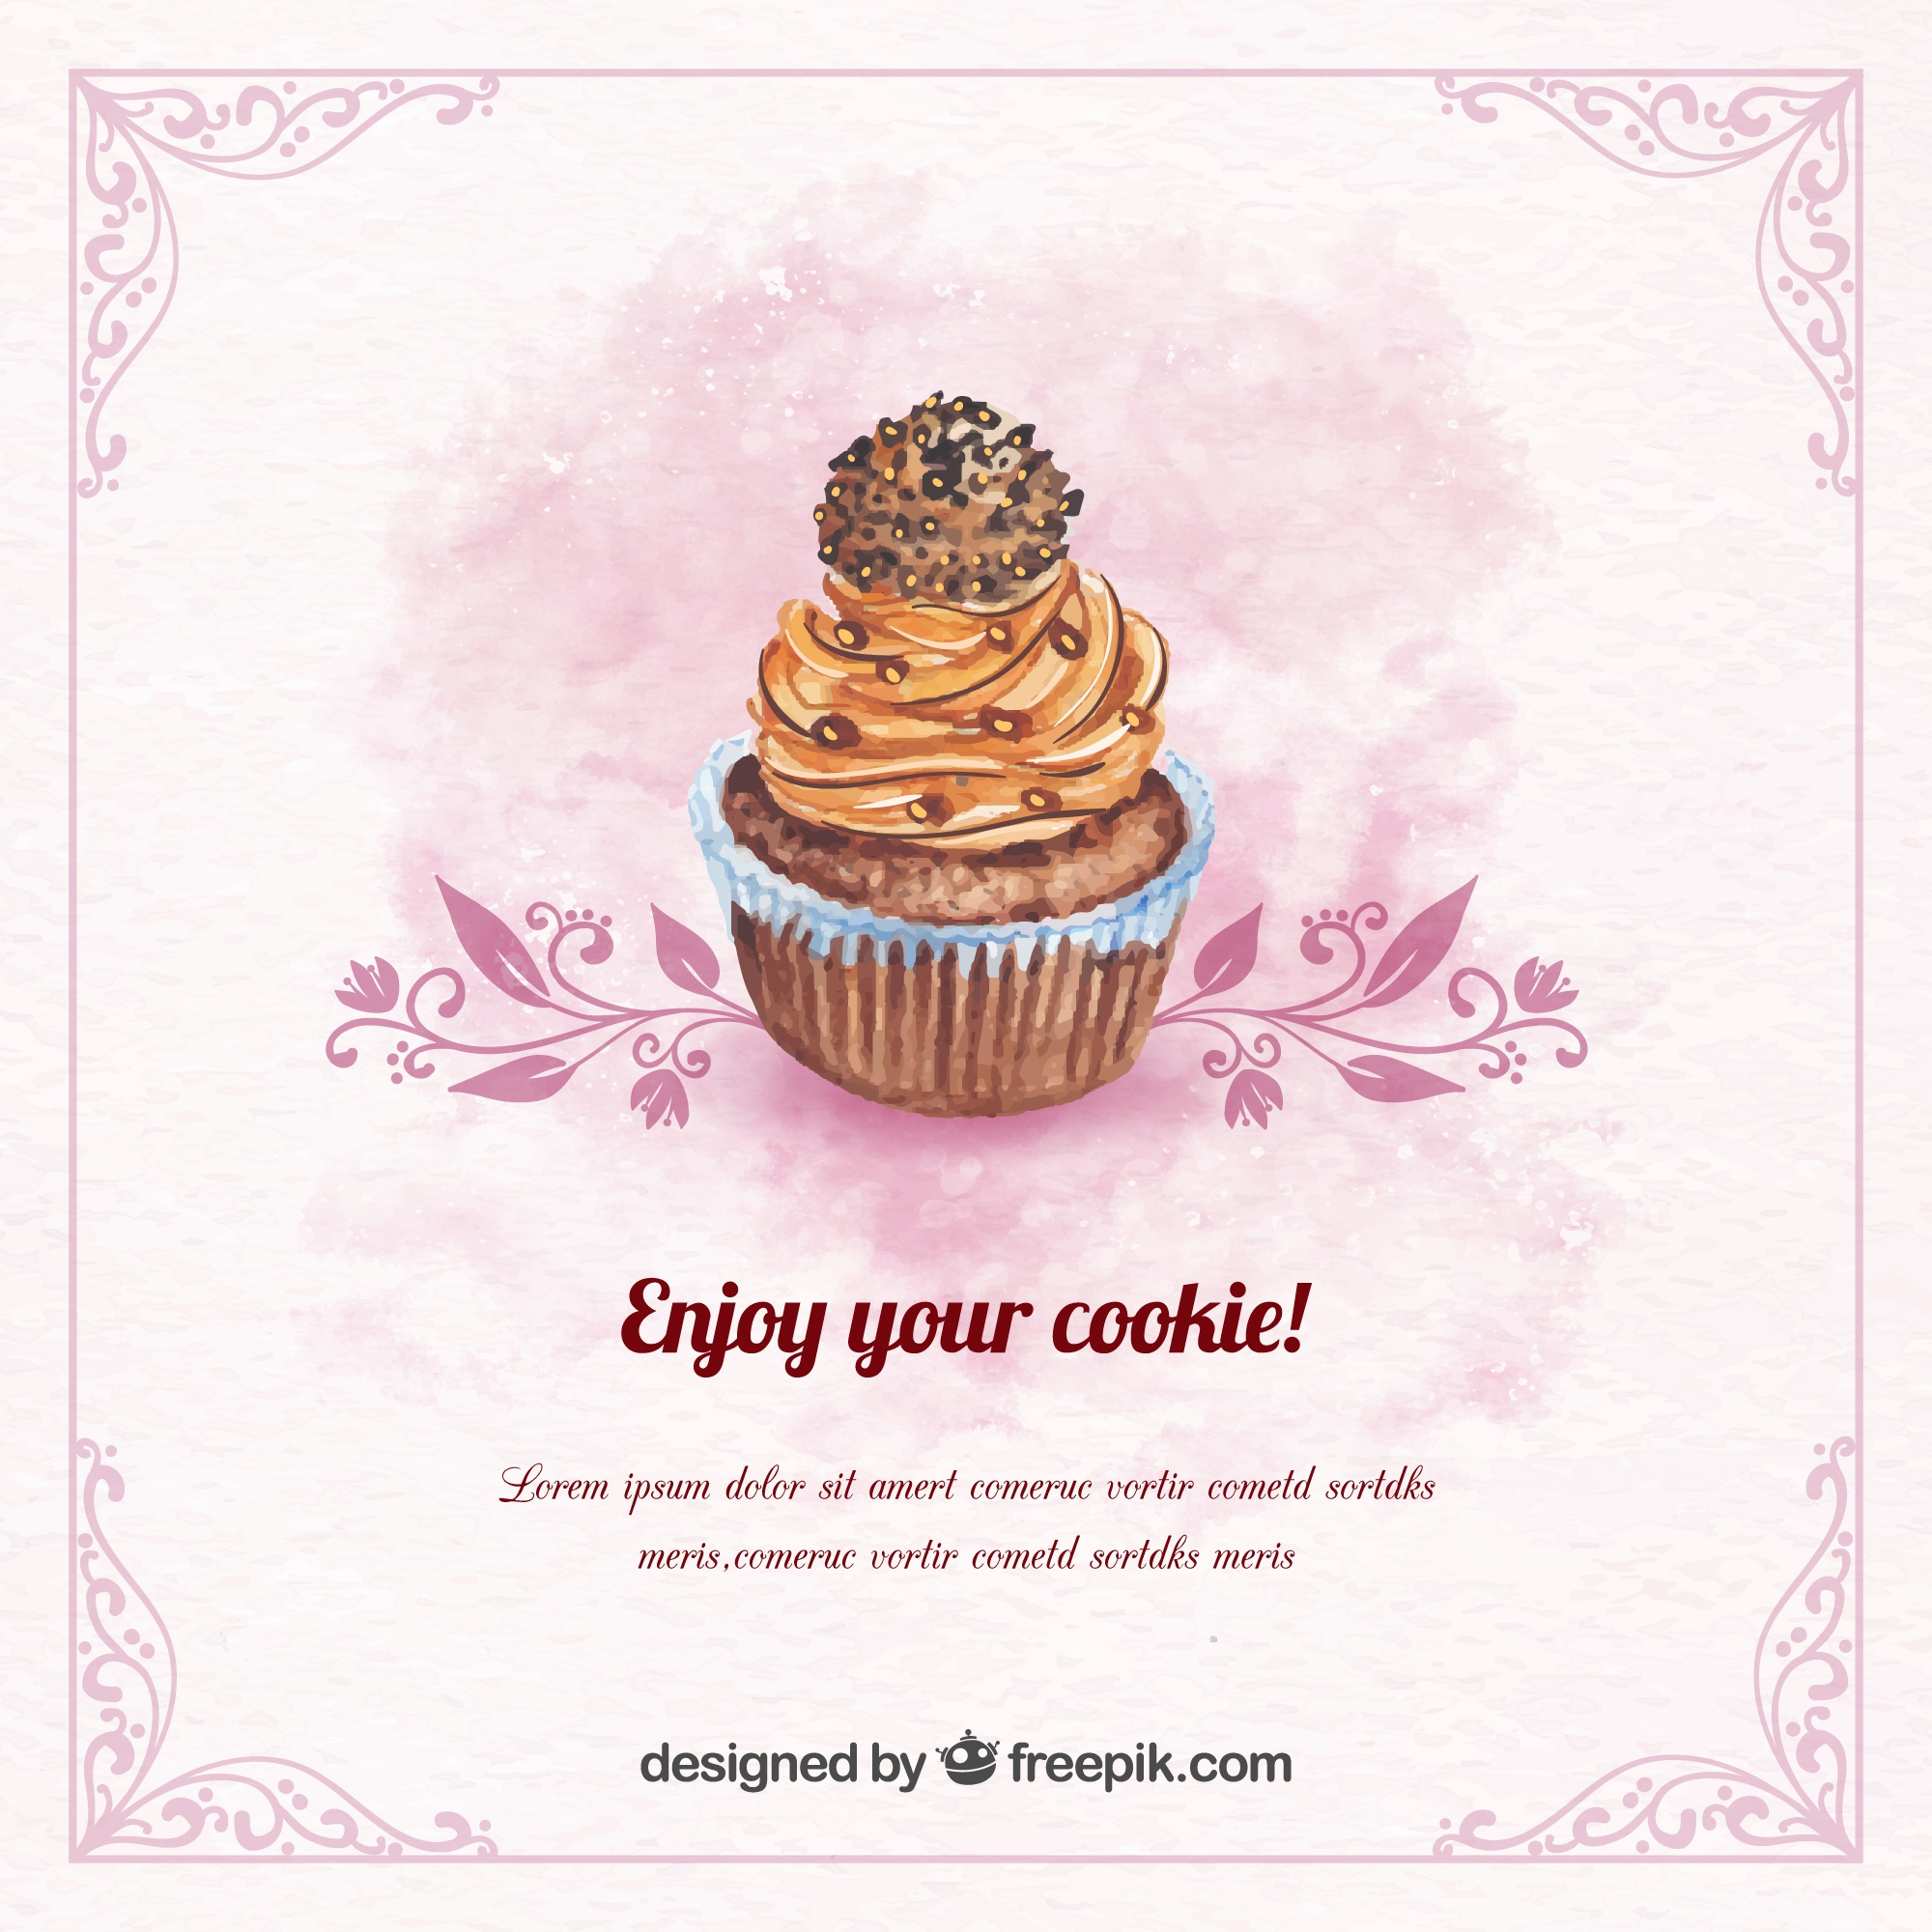 Vintage watercolor background with chocolate cupcake